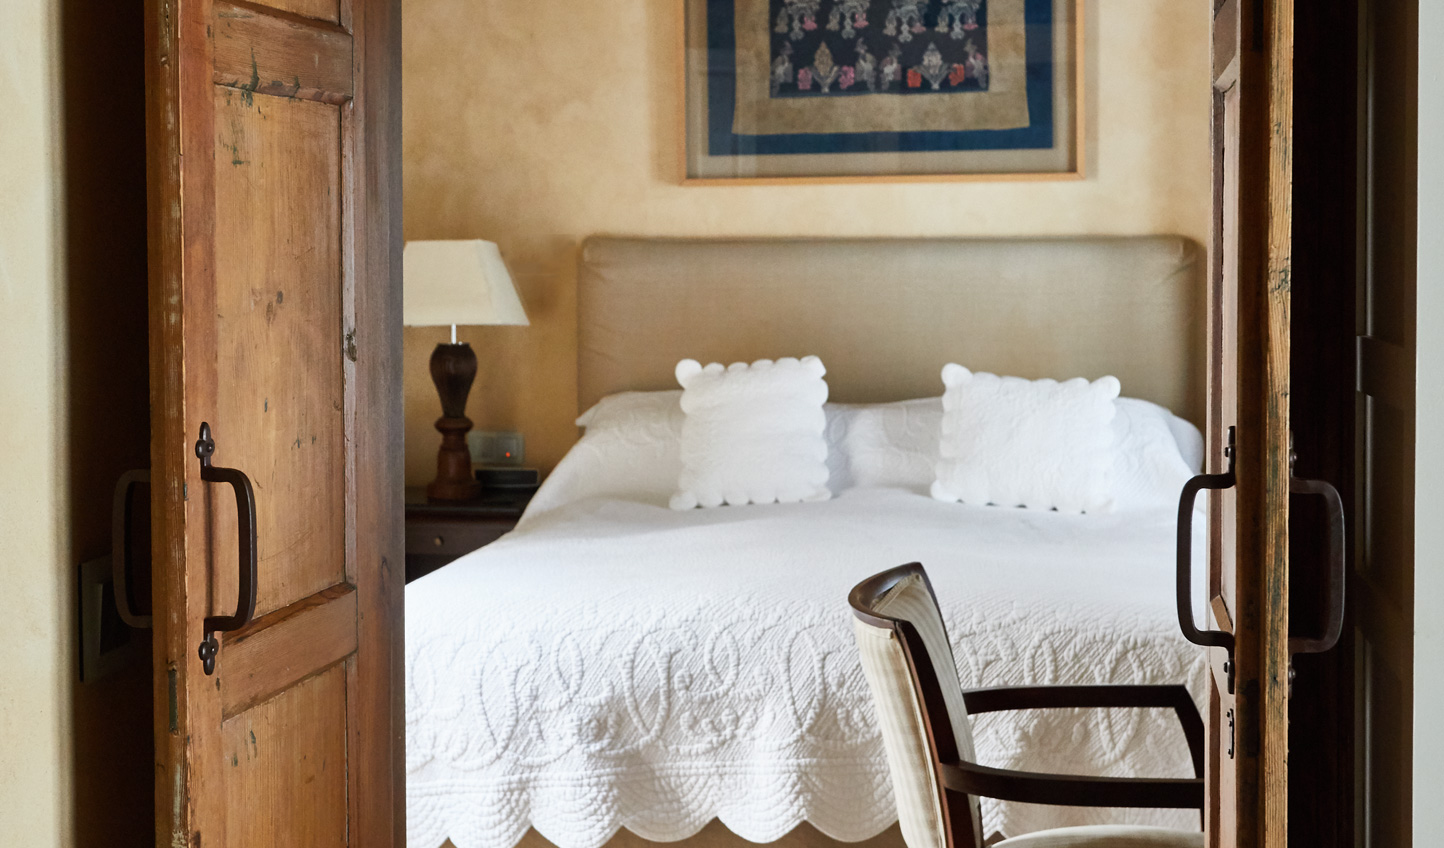 The original features in the rooms add effortless charm